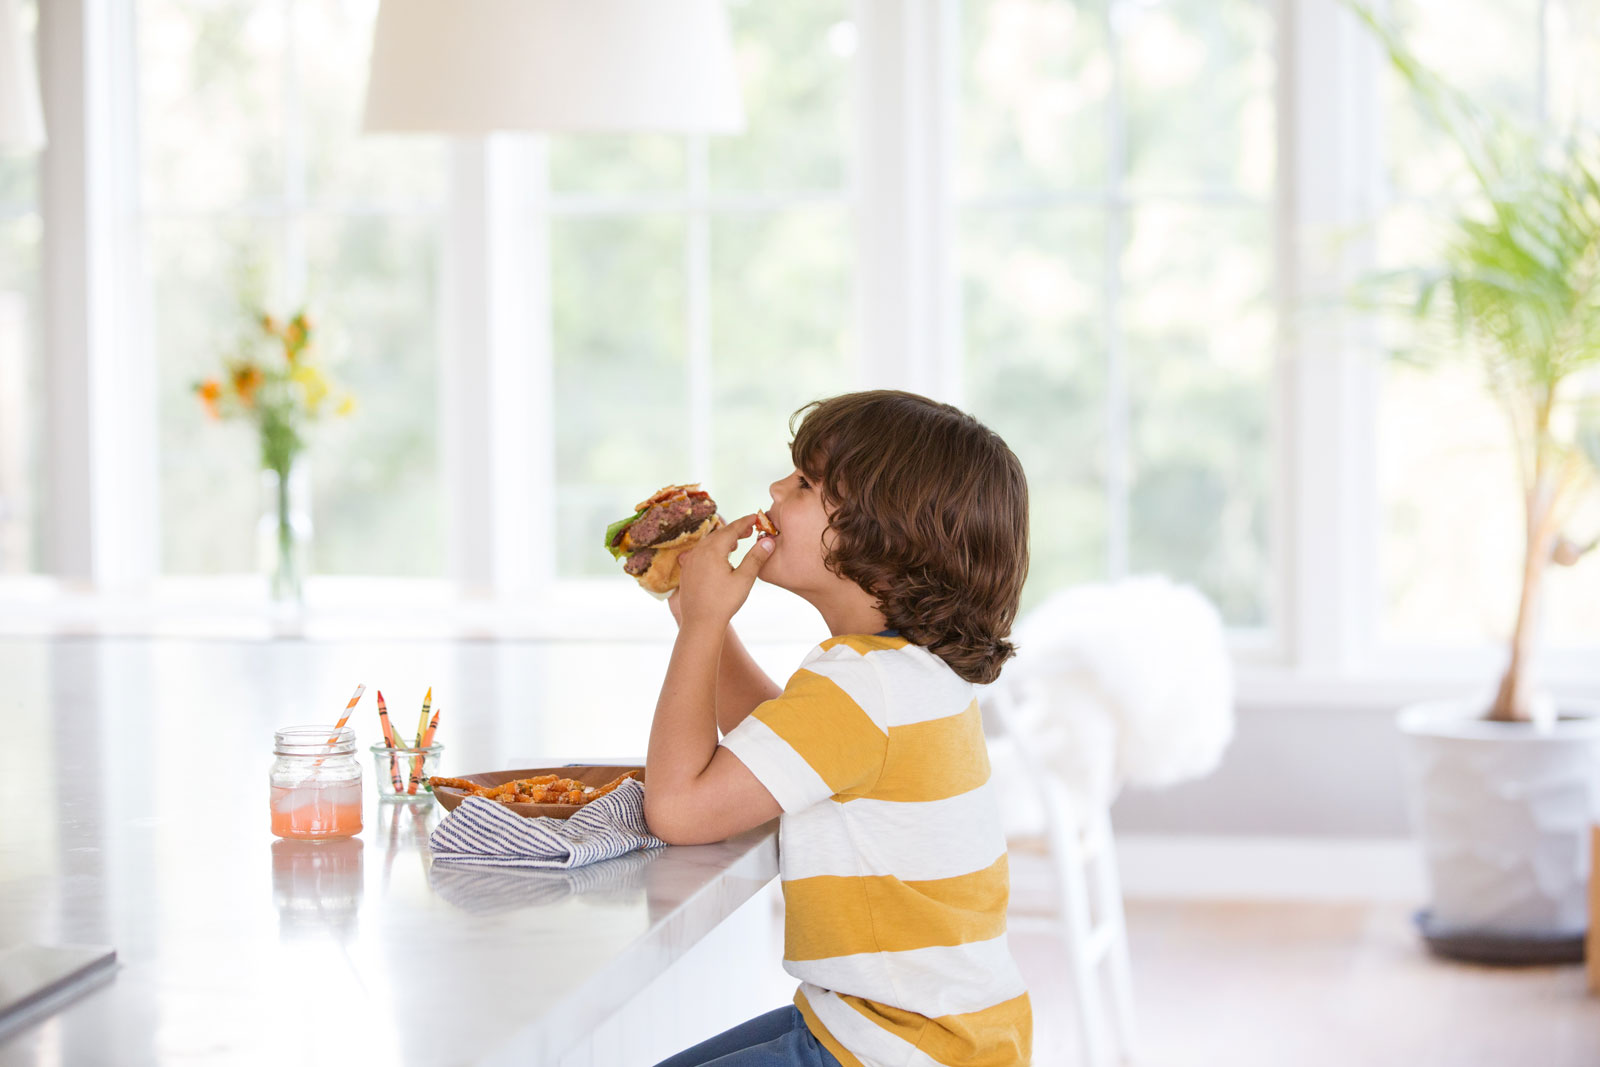 Boy at kitchen table eating a hamburger  | Dovis Bird Agency